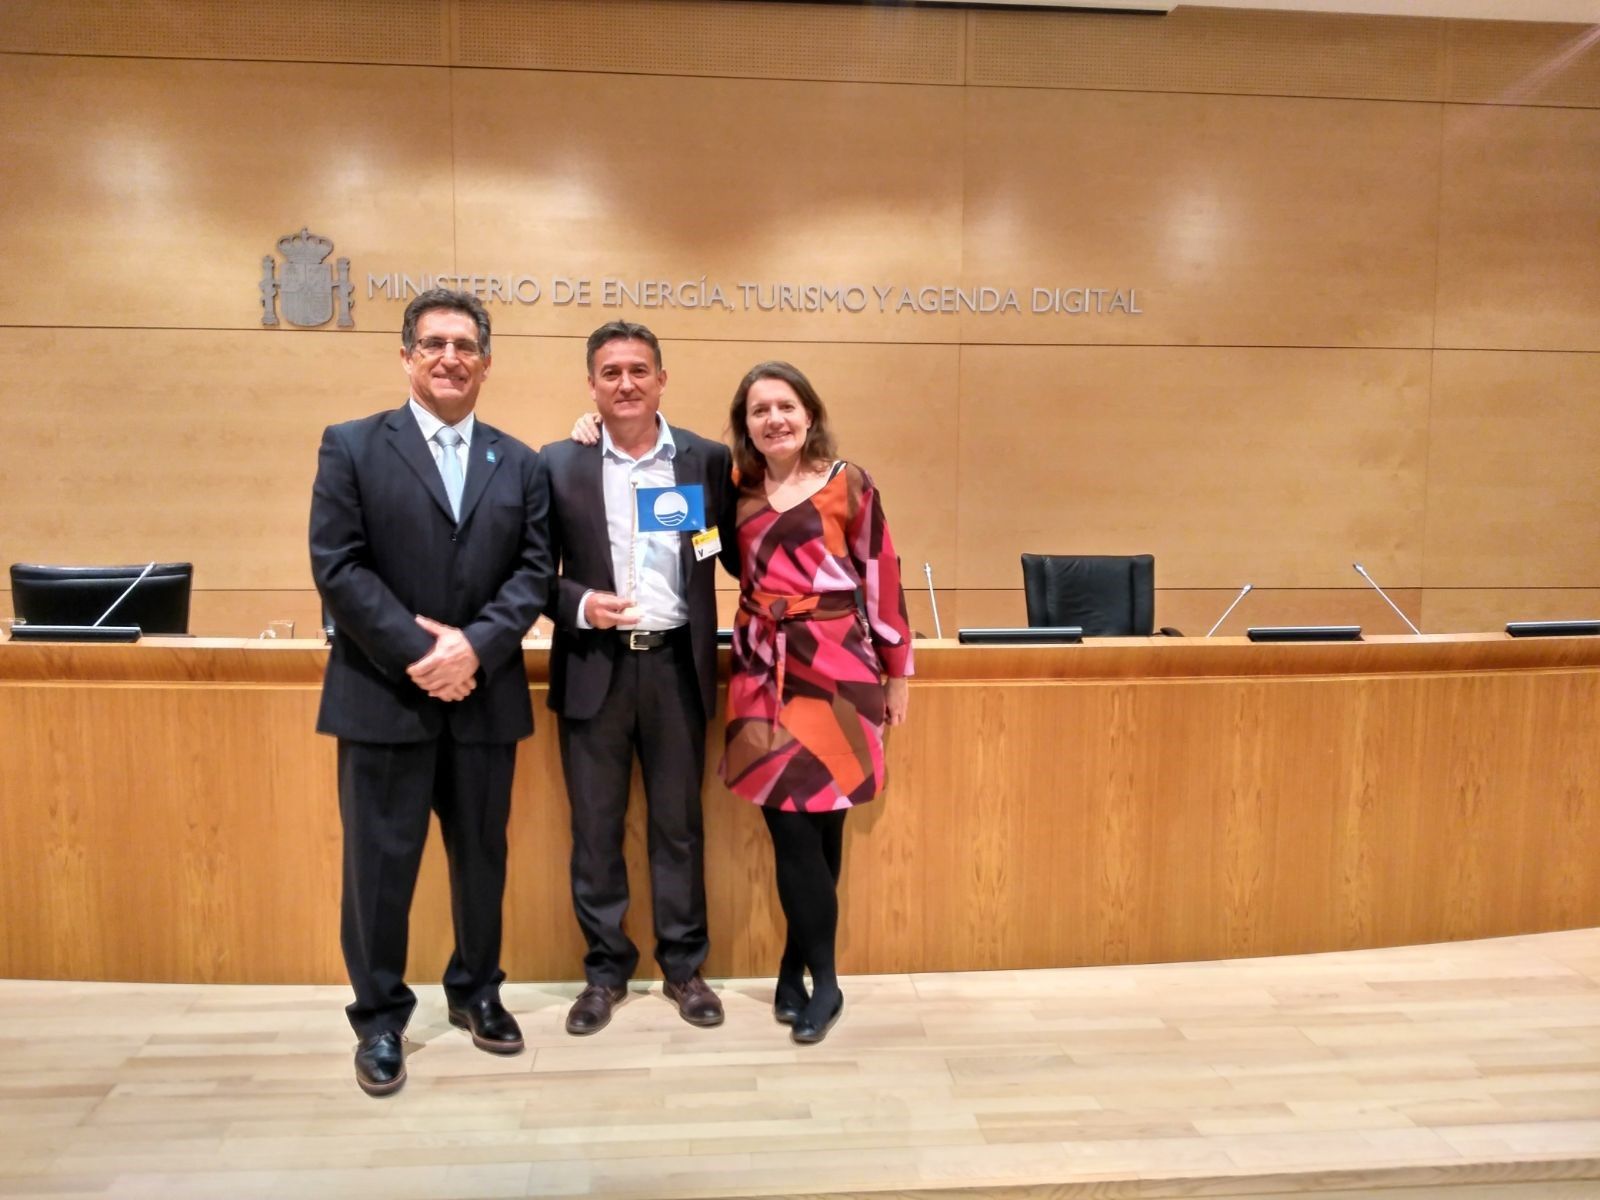 From left to right: Jose Palacios (VicePresident of ADEAC), Cayetano Ramos (Major of Orellana la Vieja, the first Blue Flag in continental waters in Spain) and Virginia Yuste (National Operator for Blue Flag in Spain).